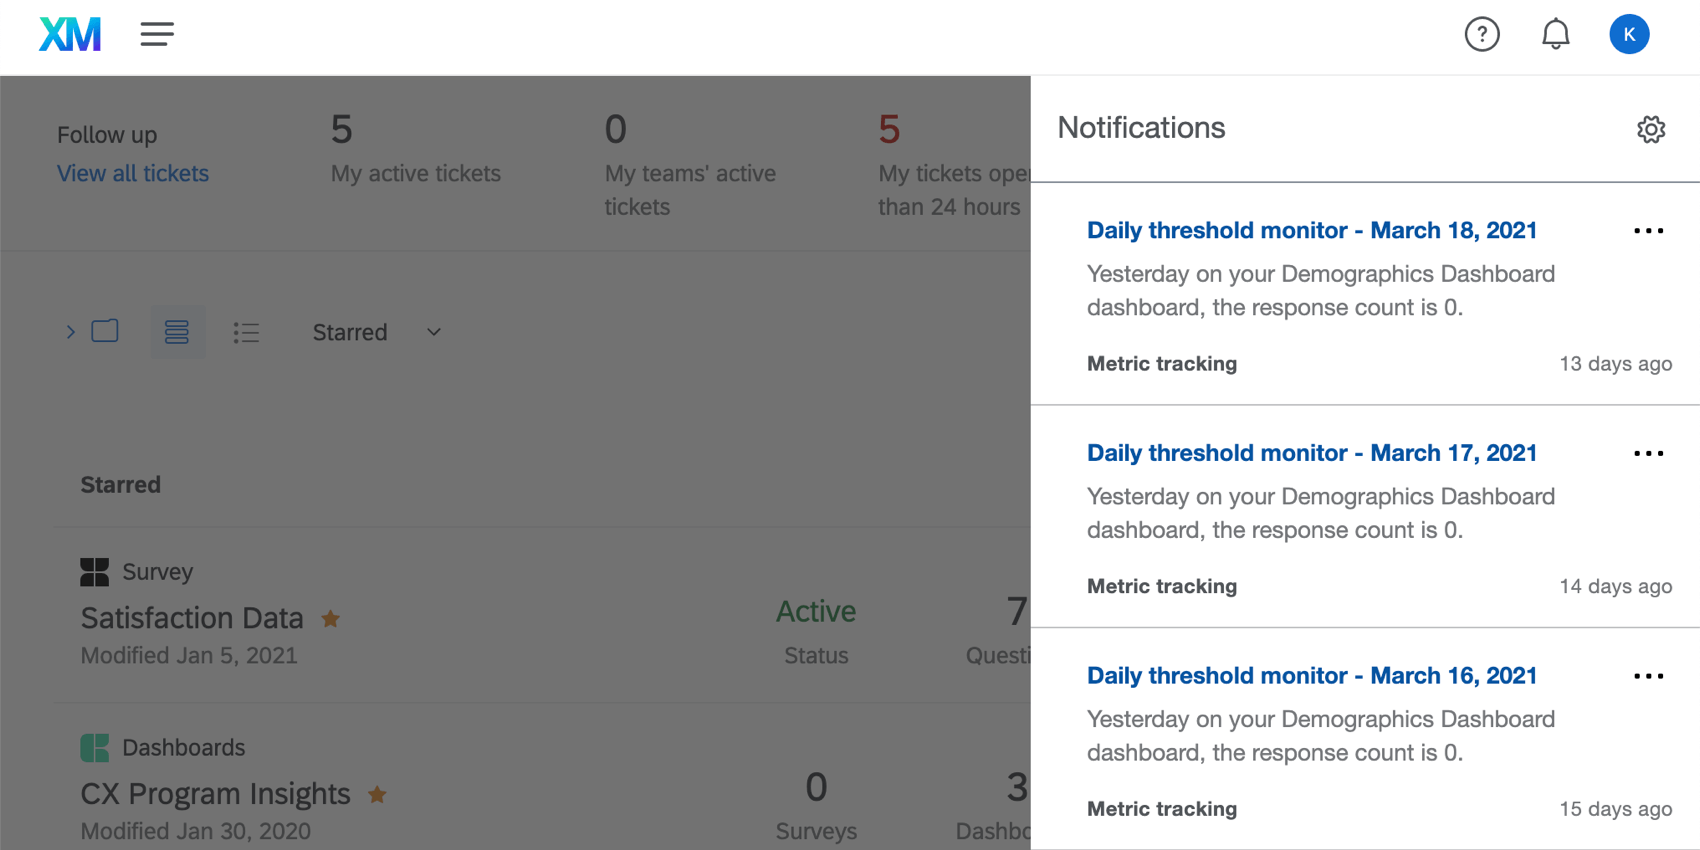 List of notifications opens to the right